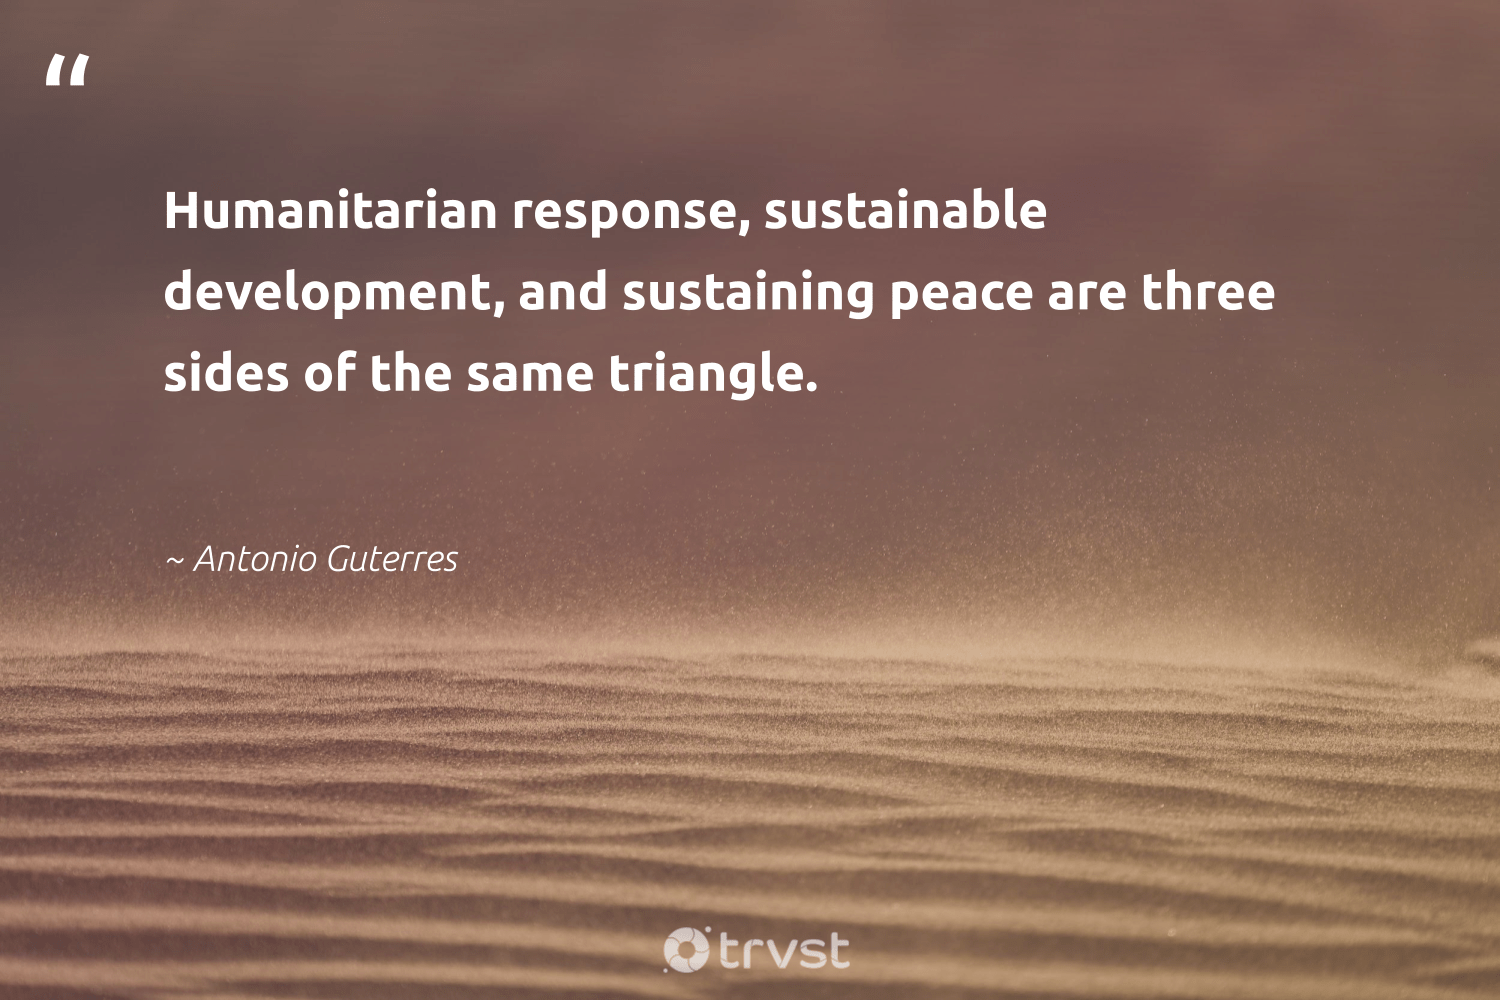 """""""Humanitarian response, sustainable development, and sustaining peace are three sides of the same triangle.""""  - Antonio Guterres #trvst #quotes #Charity #peace #sustainable #humanitarian #development #causes #society #communities #bethechange #nonprofitorganization"""